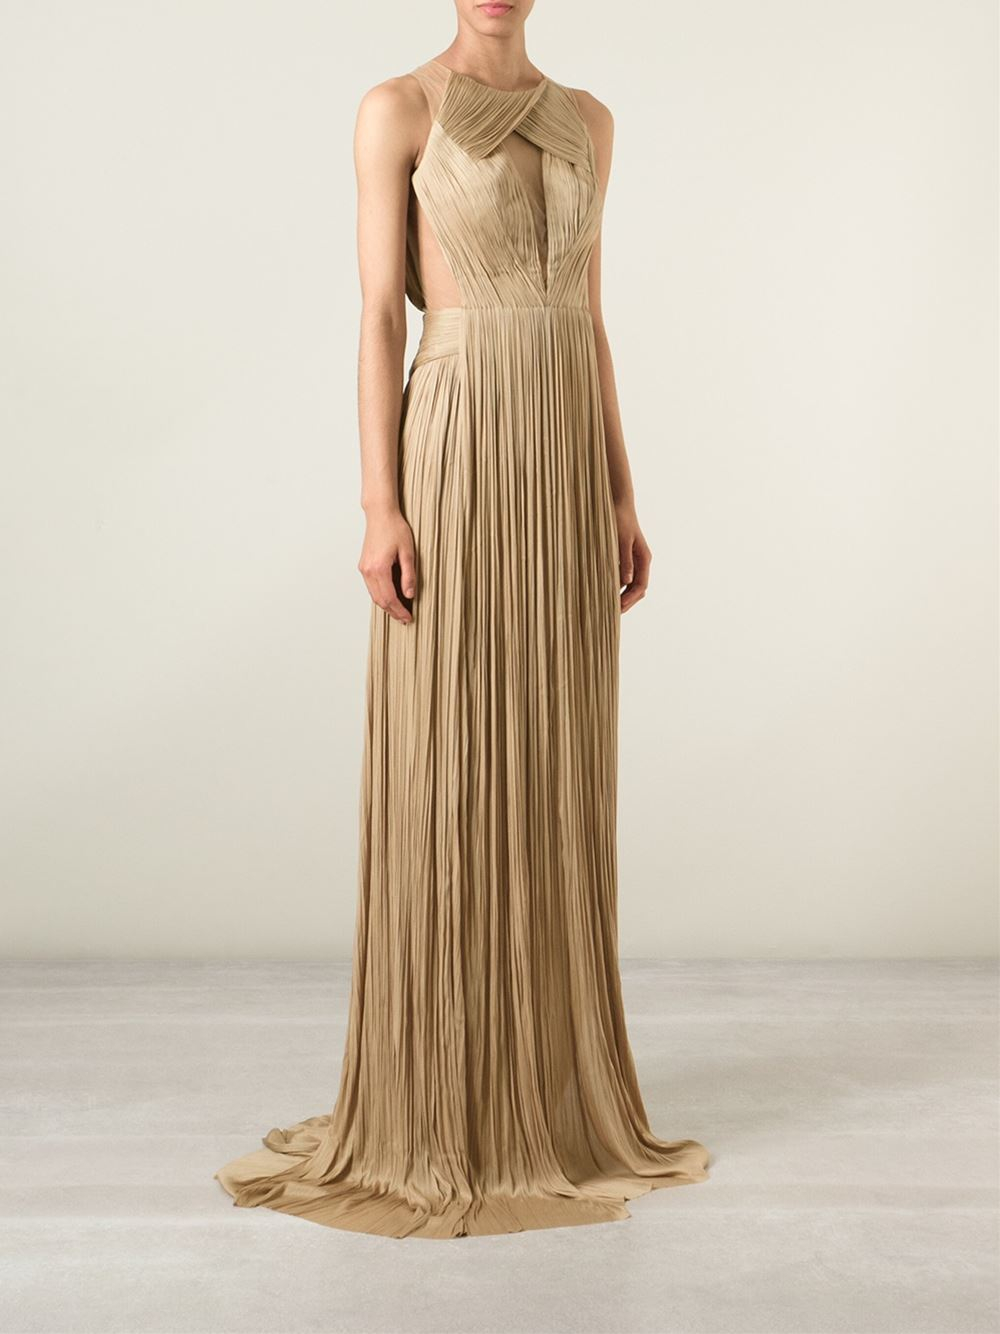 Maria Lucia Hohan Mesh-Panel Pleated Gown In Metallic - Lyst-1427